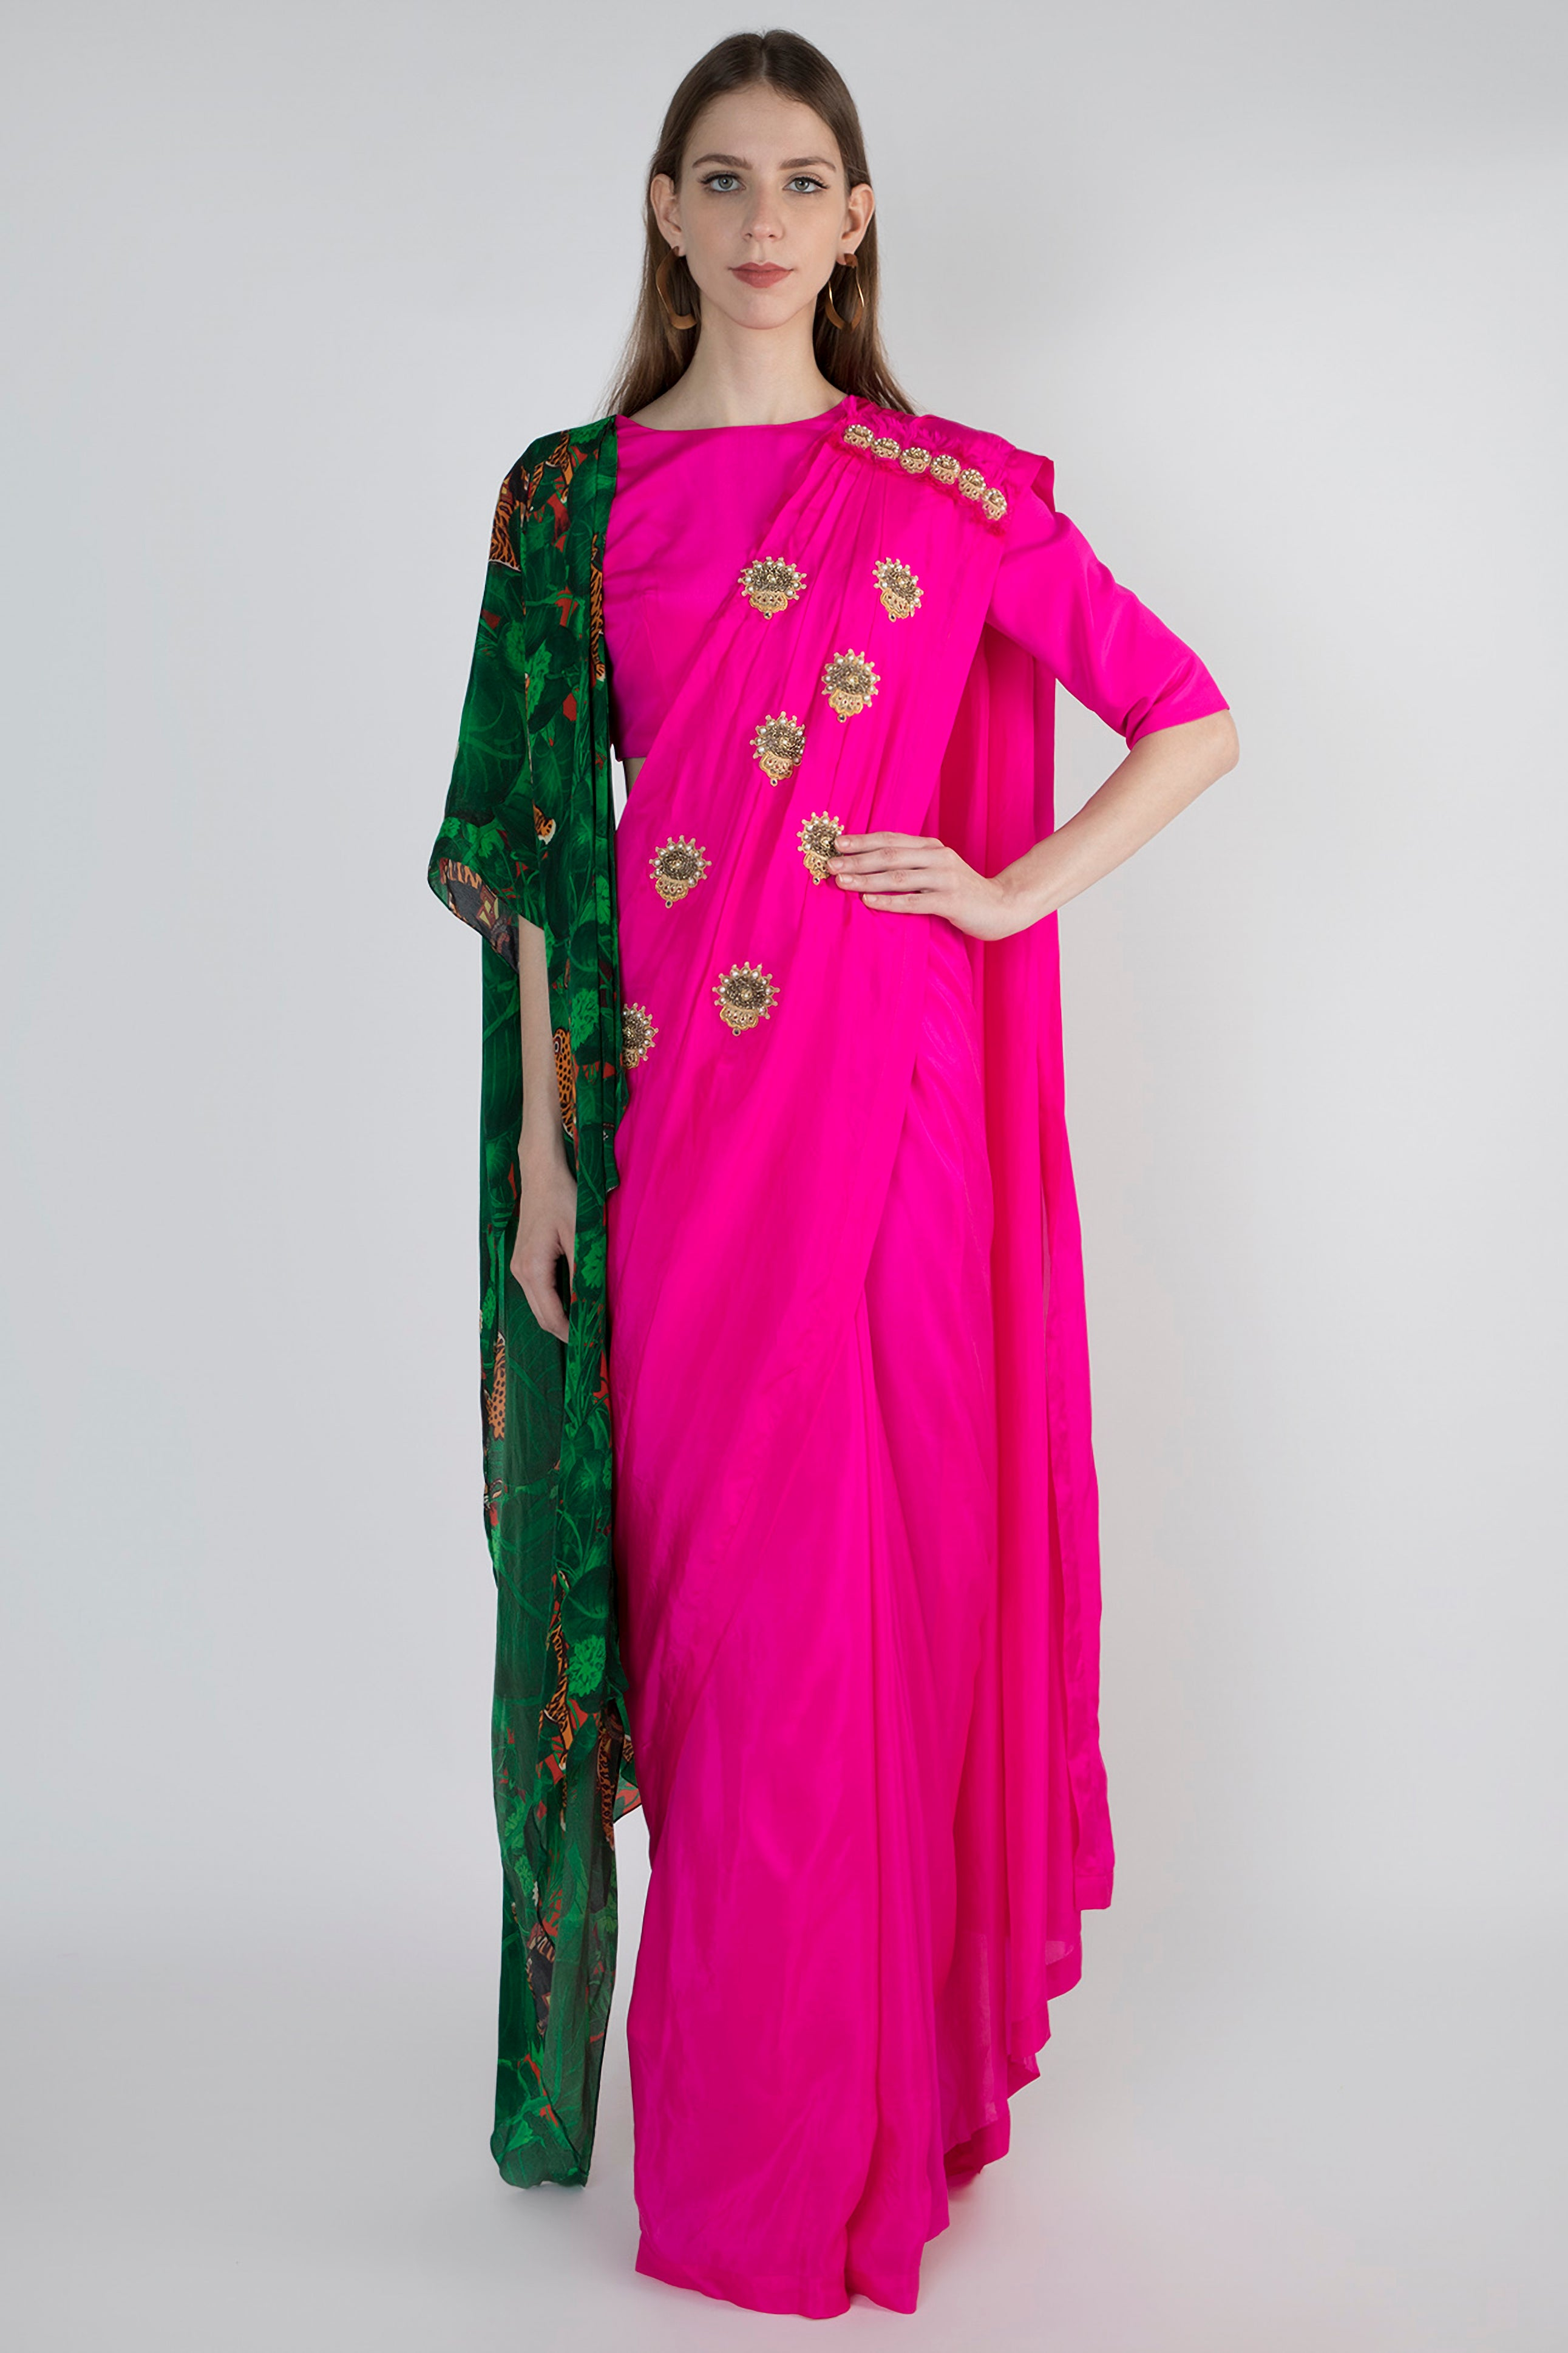 PINK EMBELLISHED AND JUNGLE PRINT DOUBLE PALLA SARI WITH PINK BLOUSE ATTACHED JUNGLE PRINT PRE PLEATED PALLA - The Grand Trunk